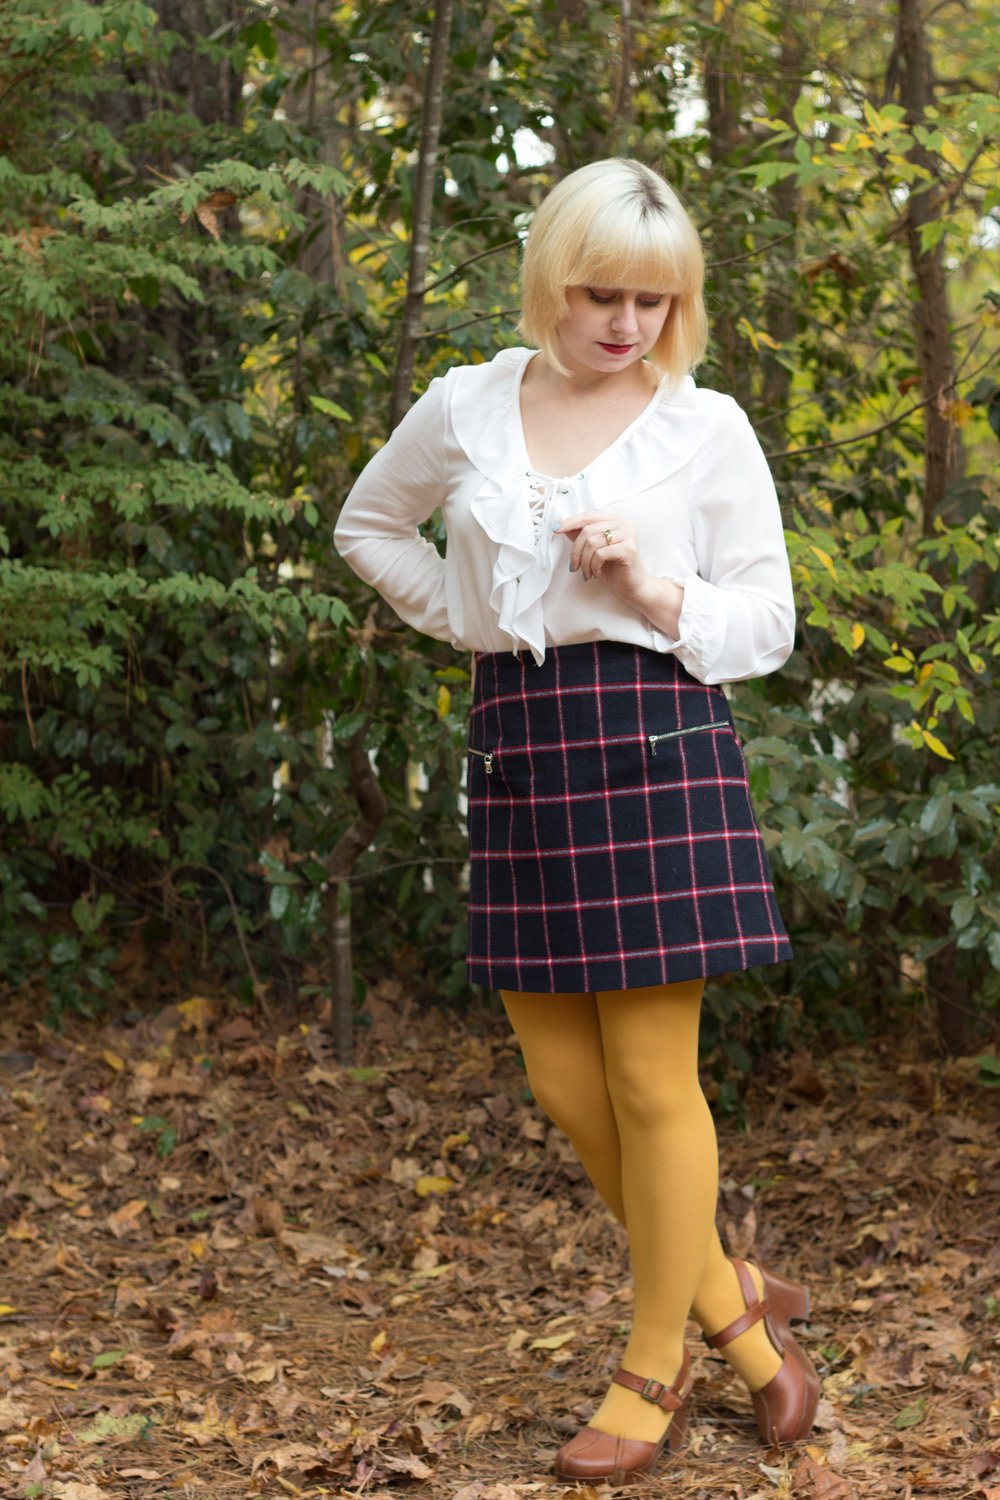 Petite Outfit Plaid Mini Skirt Yellow Tights Lace Up Ruffled Collar Shirt Tawny Brown Clogs